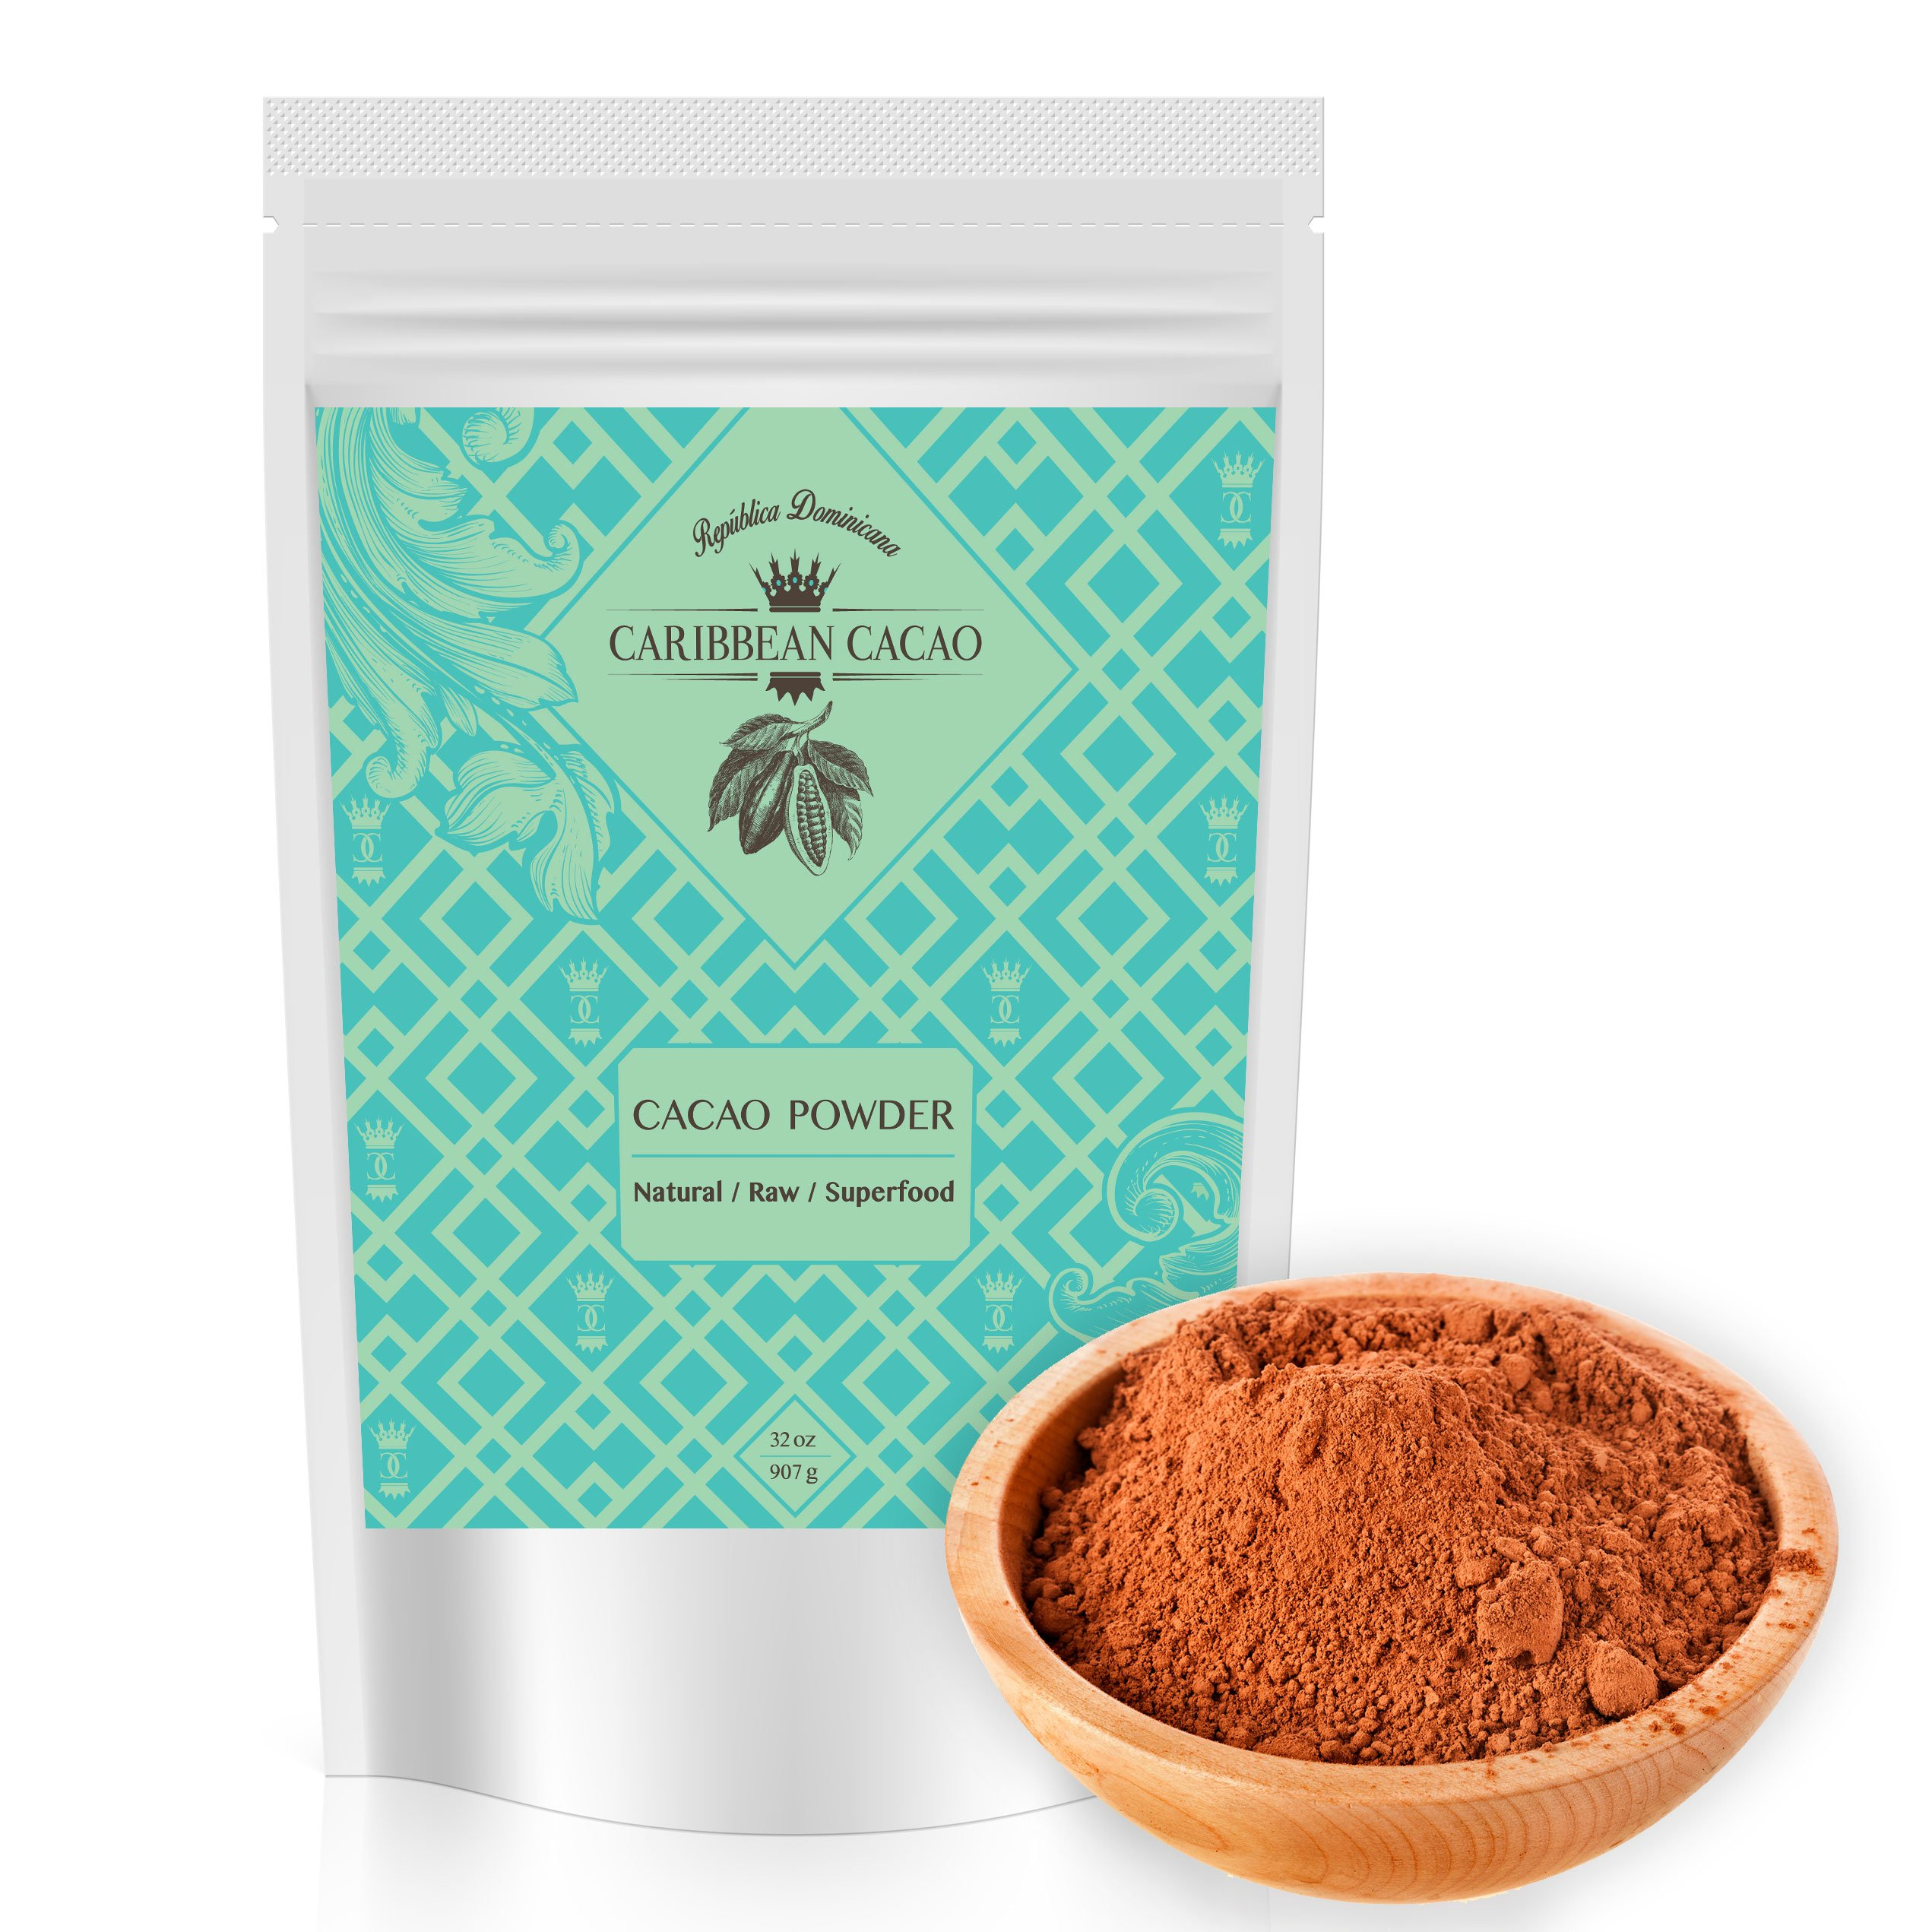 Caribbean Cacao Raw Cacao Powder - From our exclusive source in the Dominican Republic. Low Carb, Protein Packed, Unsweetened Superfood. Enhance Smoothies, Coffee, Hot Chocolate, & Healthy Treats 2 LB